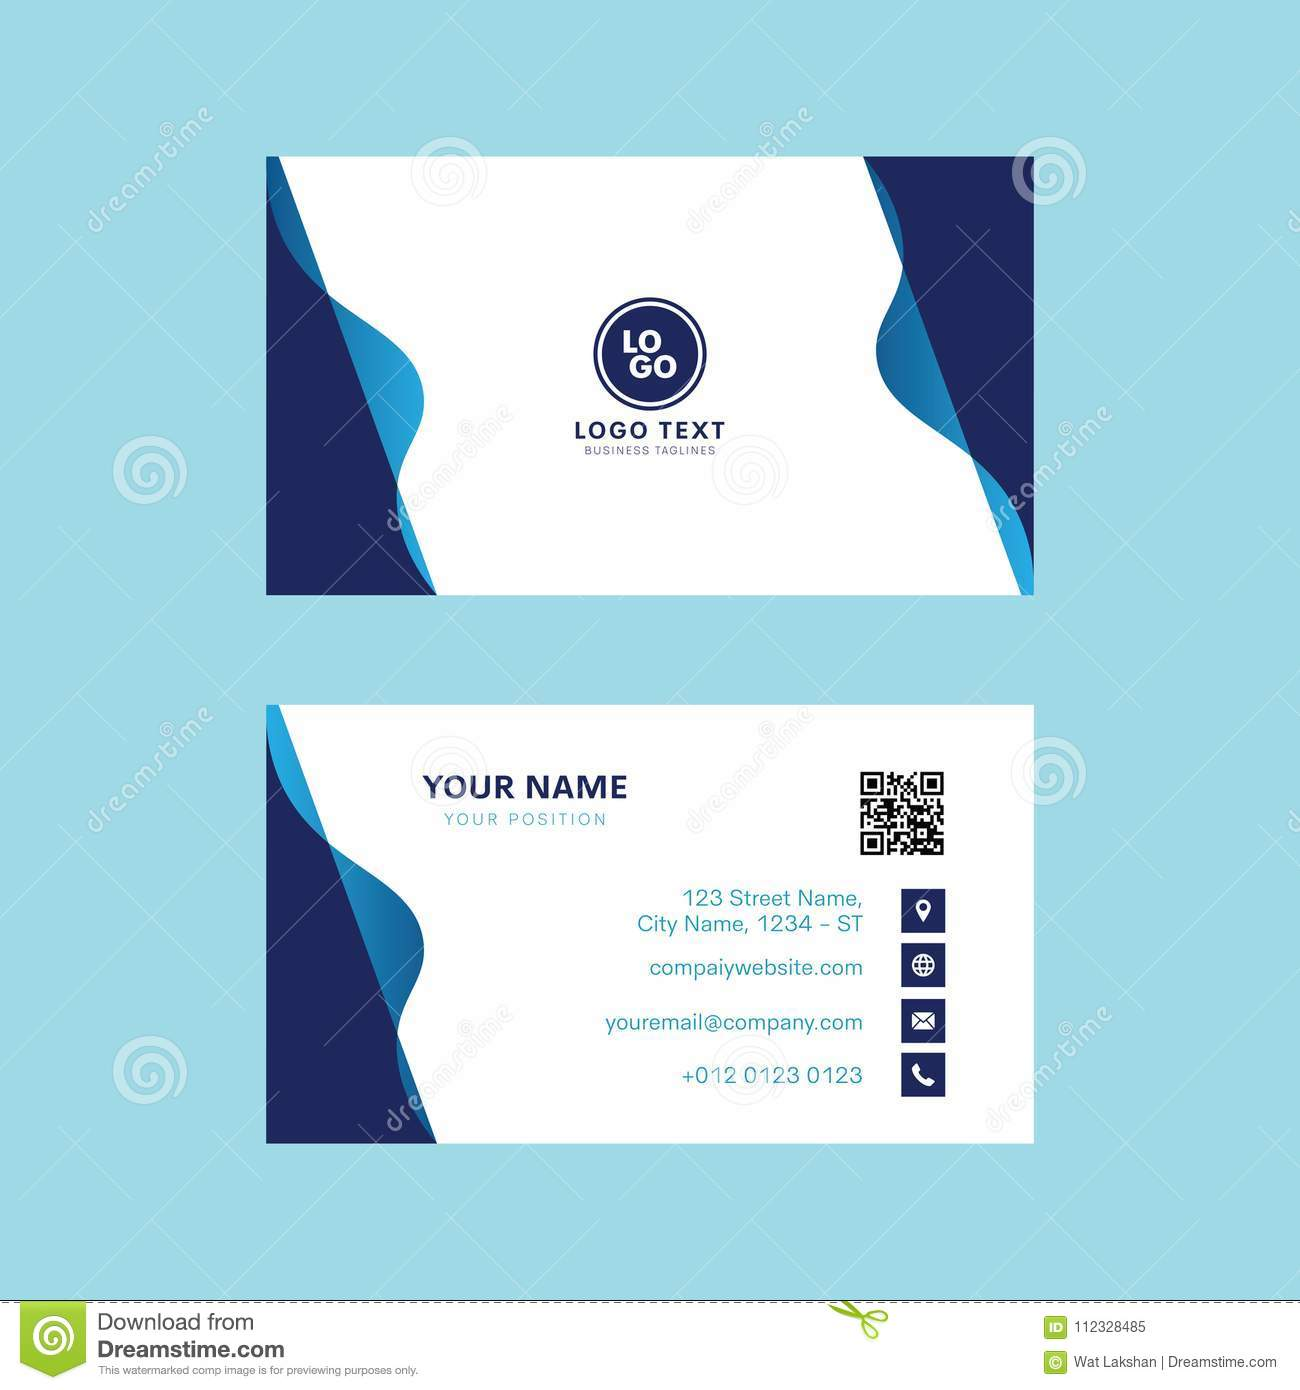 Professional business card vector design invitation card template royalty free stock photo download professional business card vector design invitation card template modern design stopboris Gallery